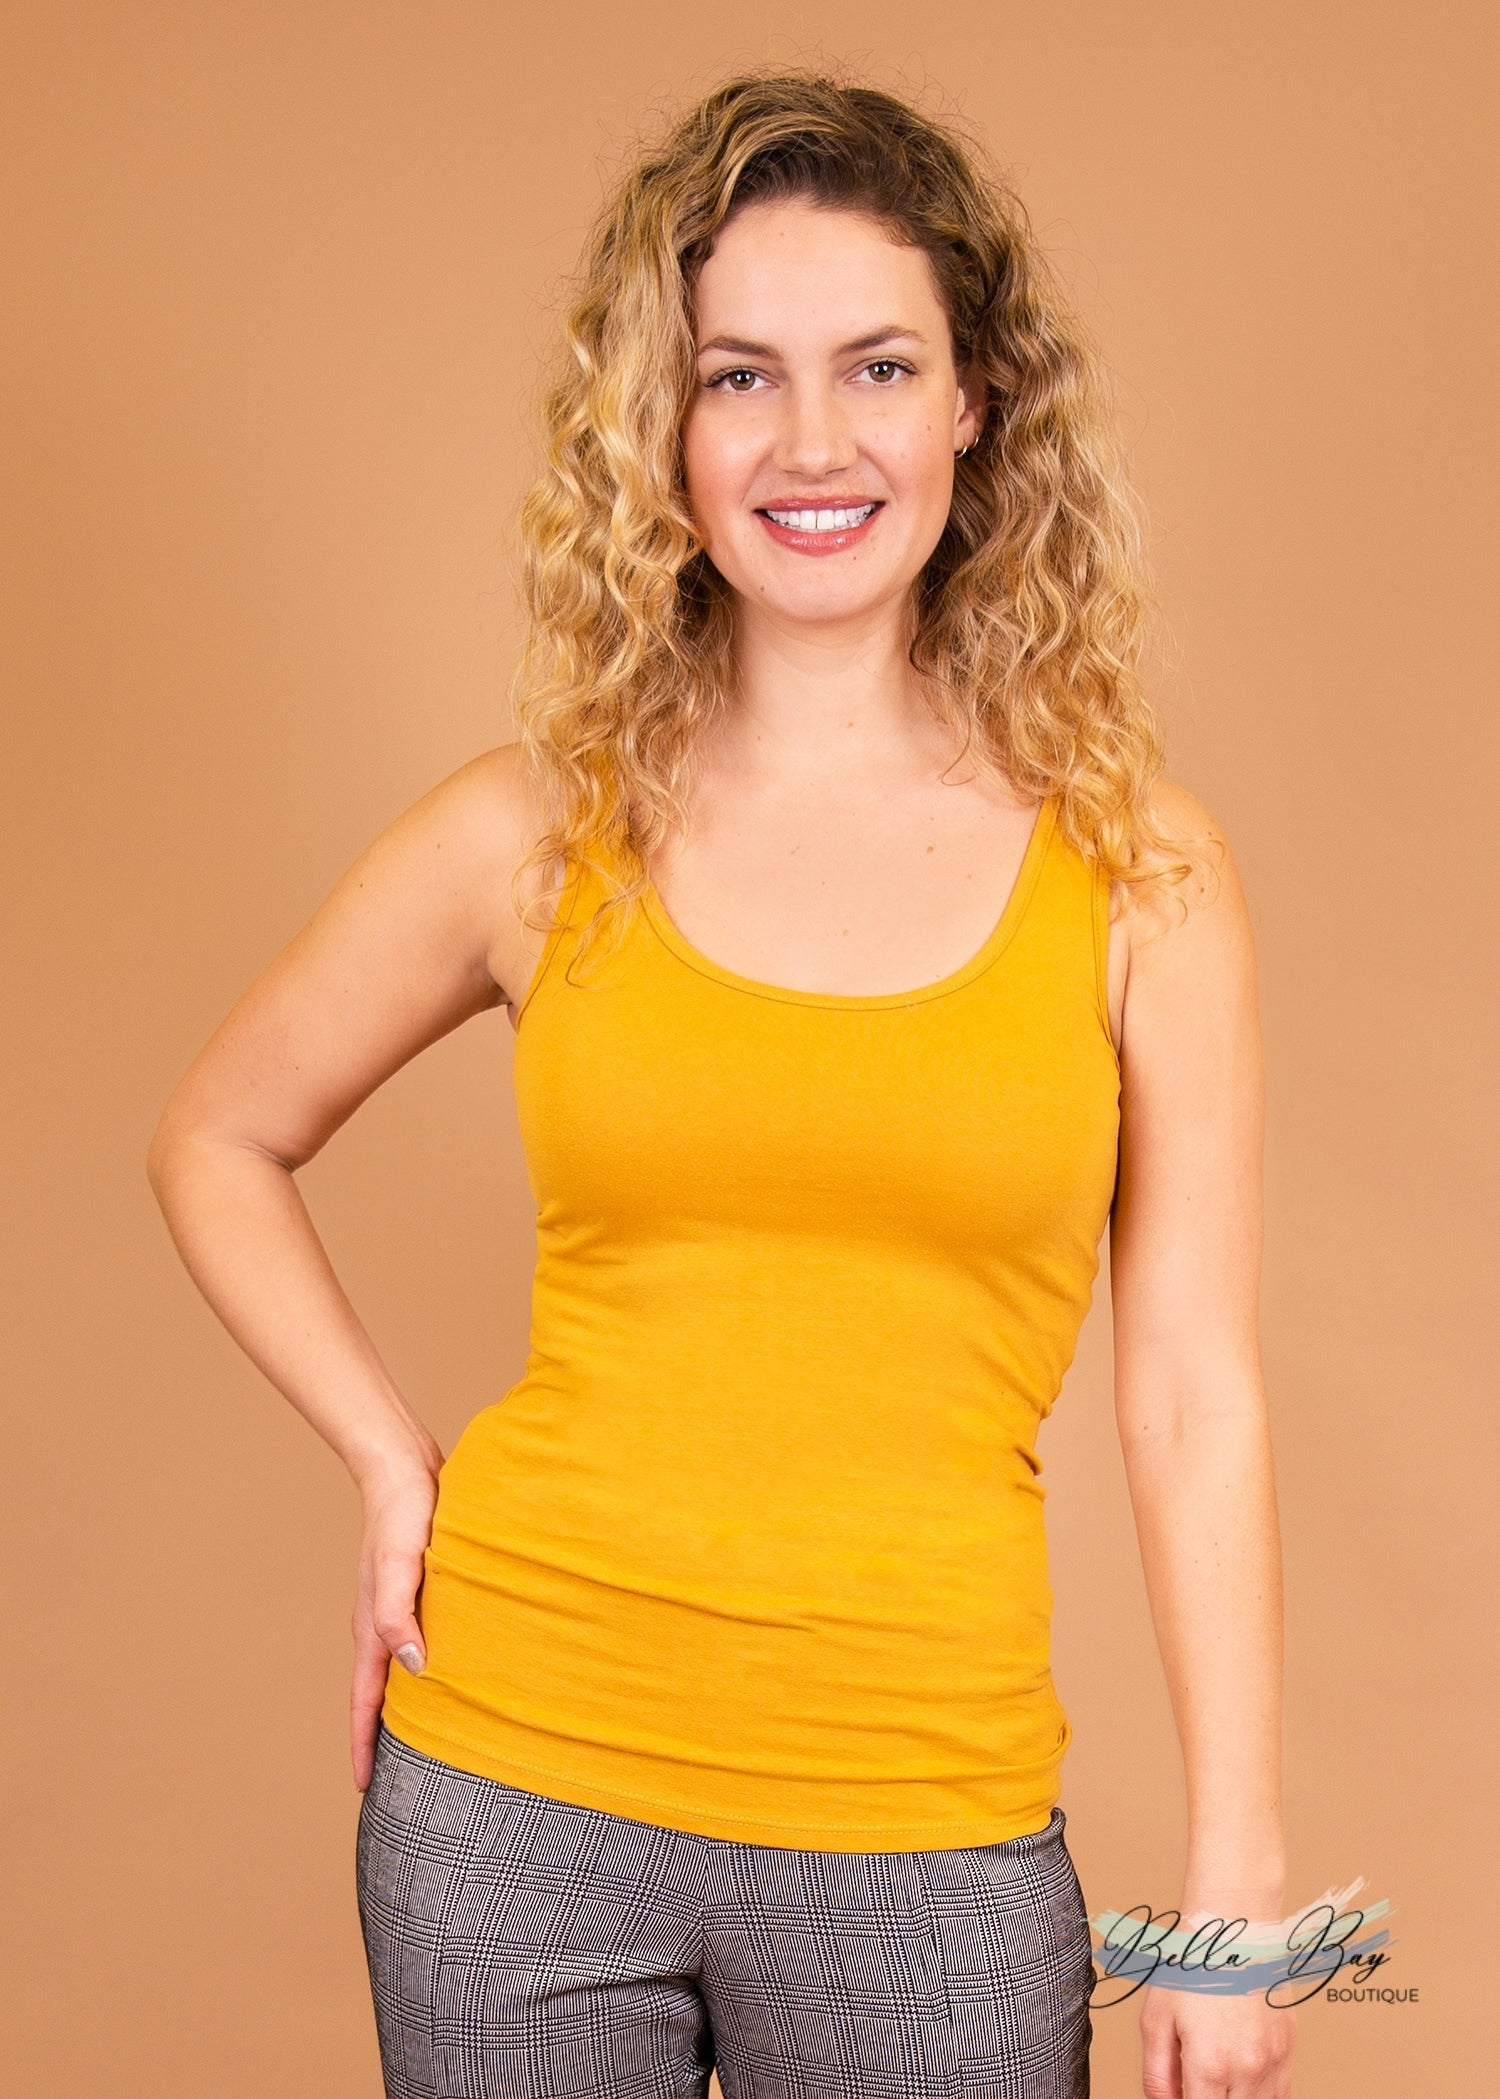 Paisley Raye Layering Tank Top- Mustard (3X) - Paisley Raye with Bella Bay Boutique, shop now at  https://shopbellabay.com/ or locally in Newport Oregon